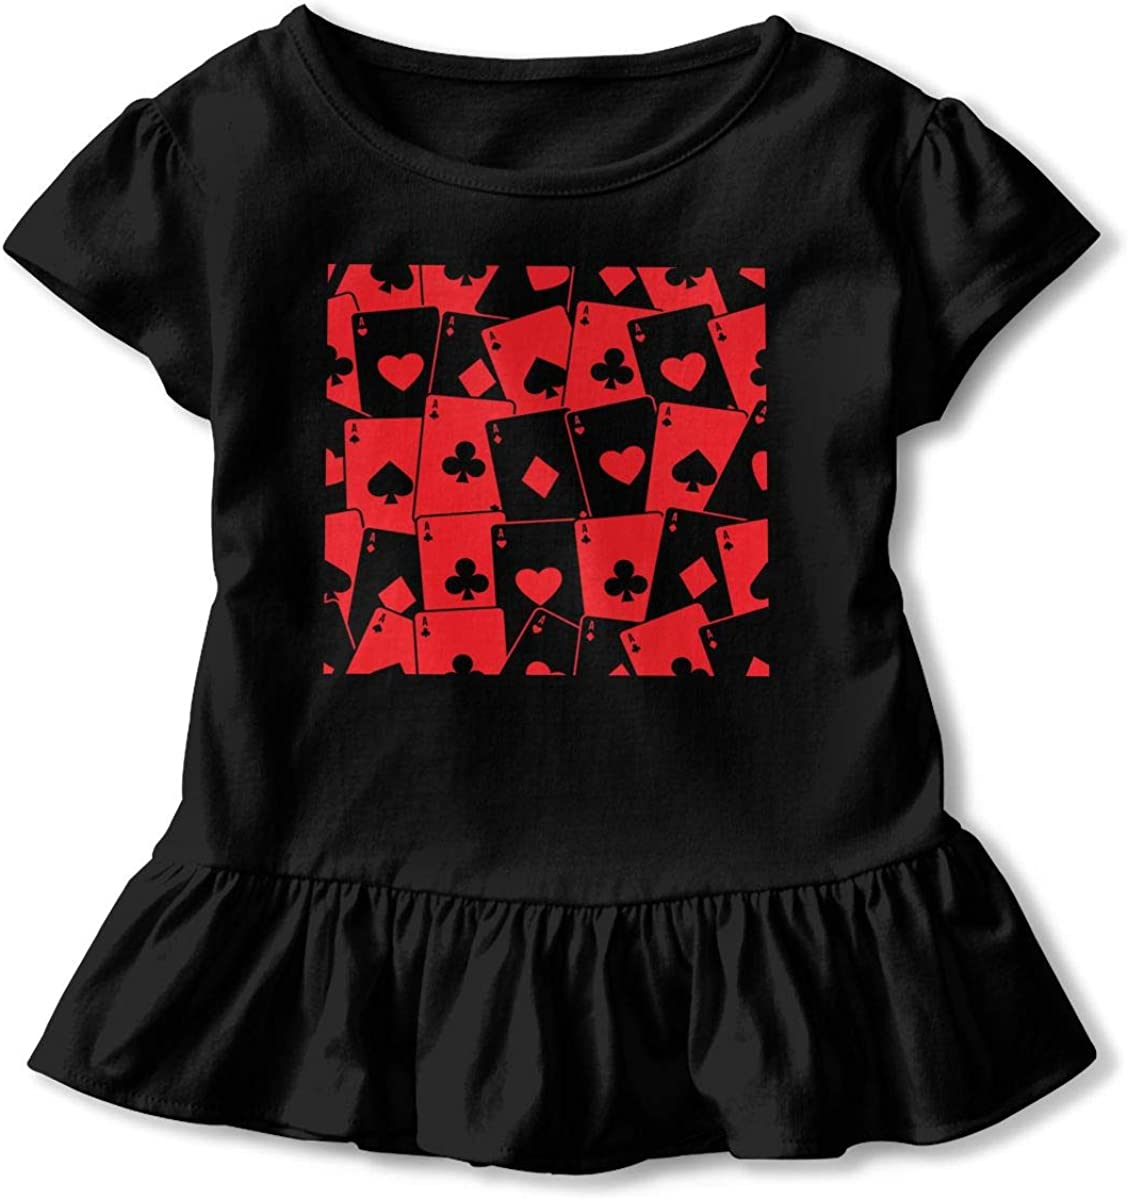 Red Poker Card Baby Girls Short Sleeve T-Shirt Ruffles Basic Shirt Dress for 2-6 Years Old Baby